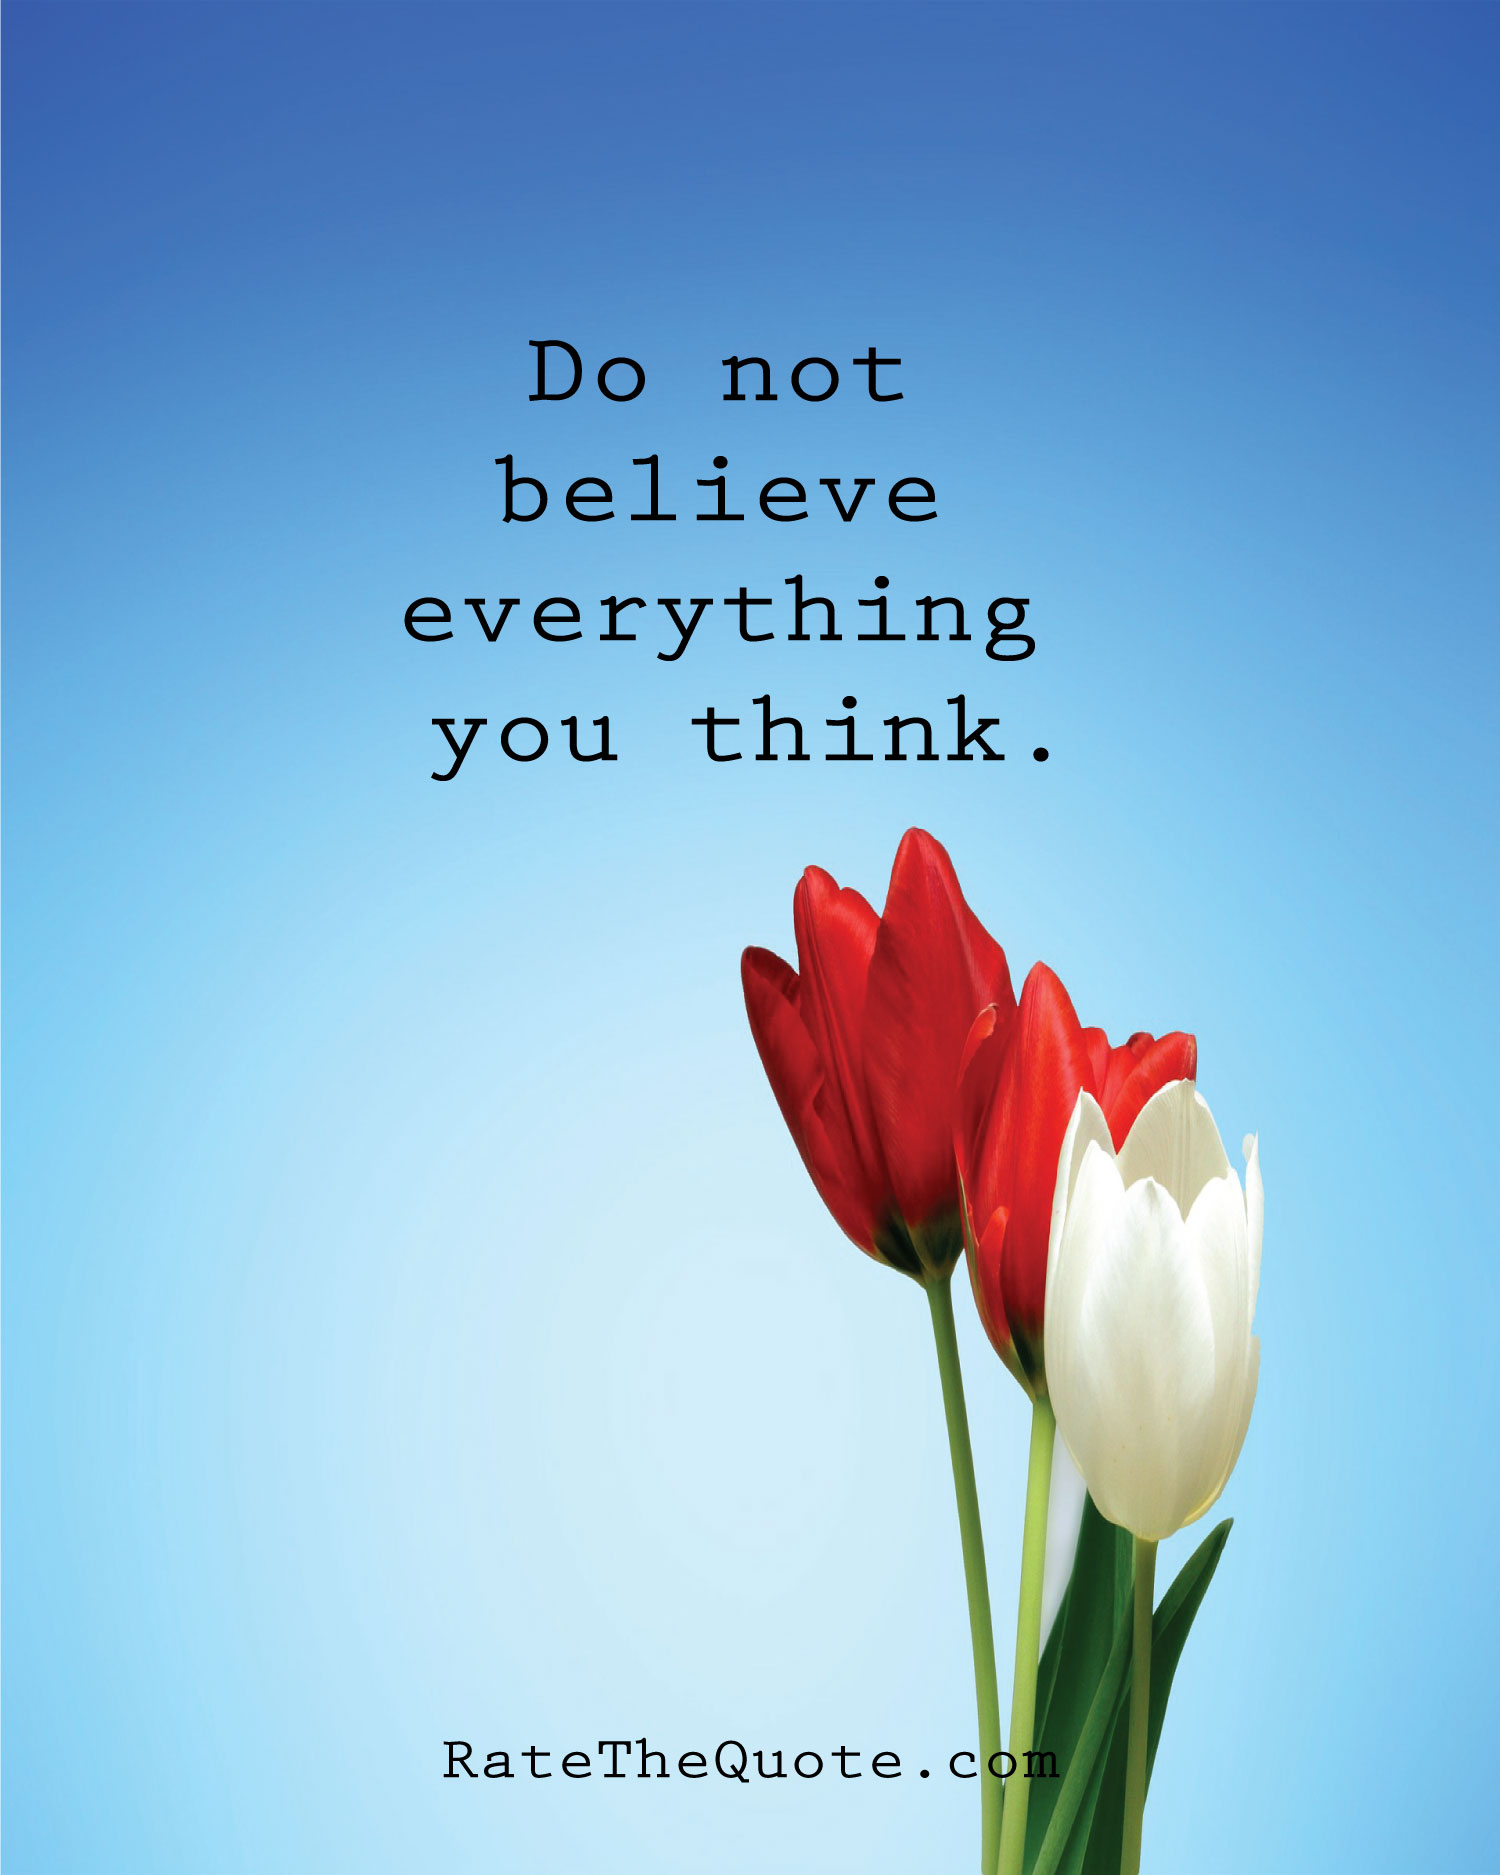 Do not believe everything you think.